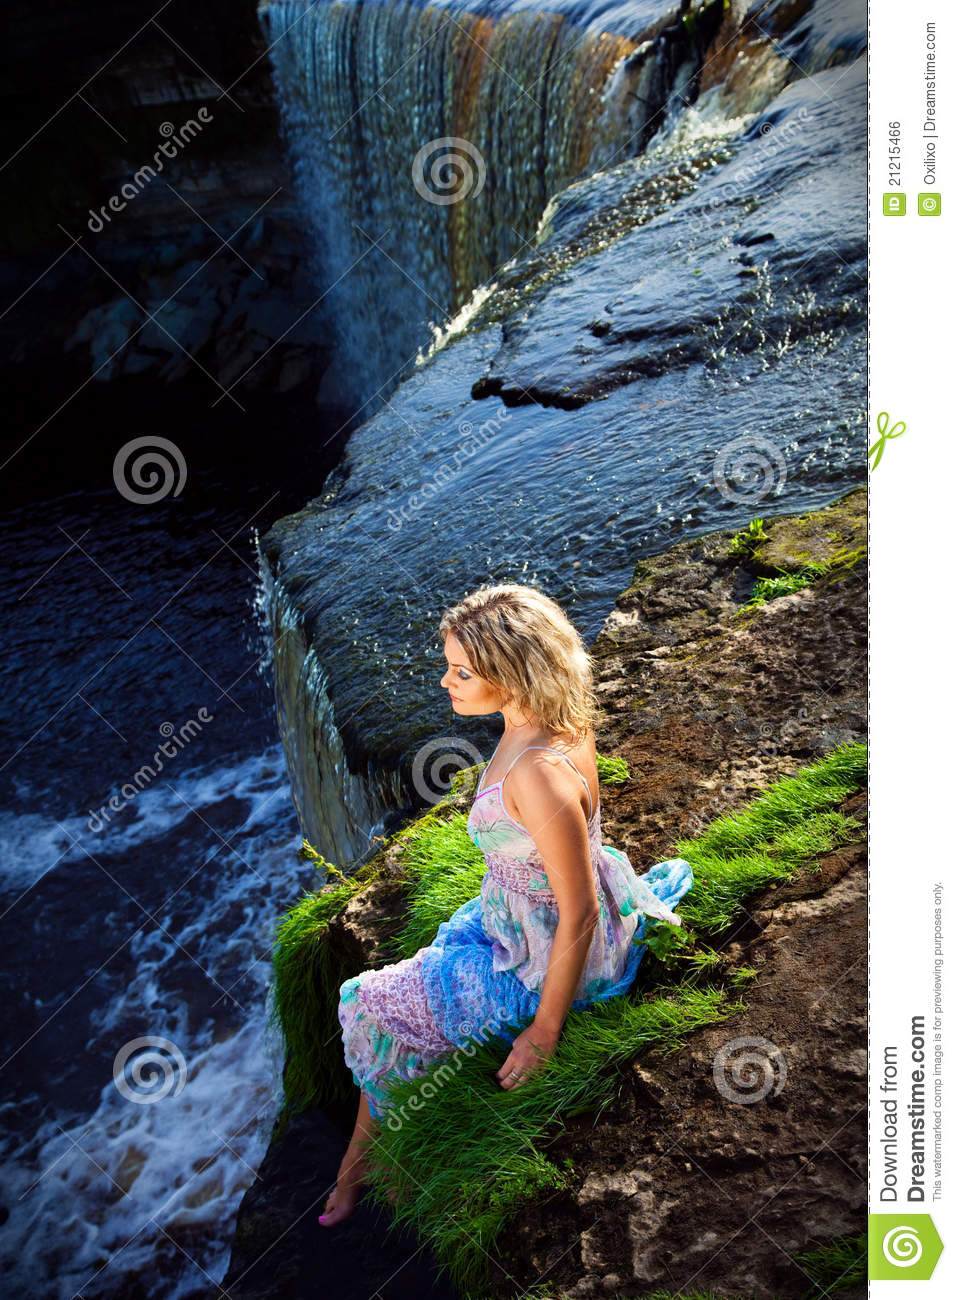 Beautiful Wallpapers 3d Animation Beautiful Girl On Brink Of River Waterfalls Royalty Free